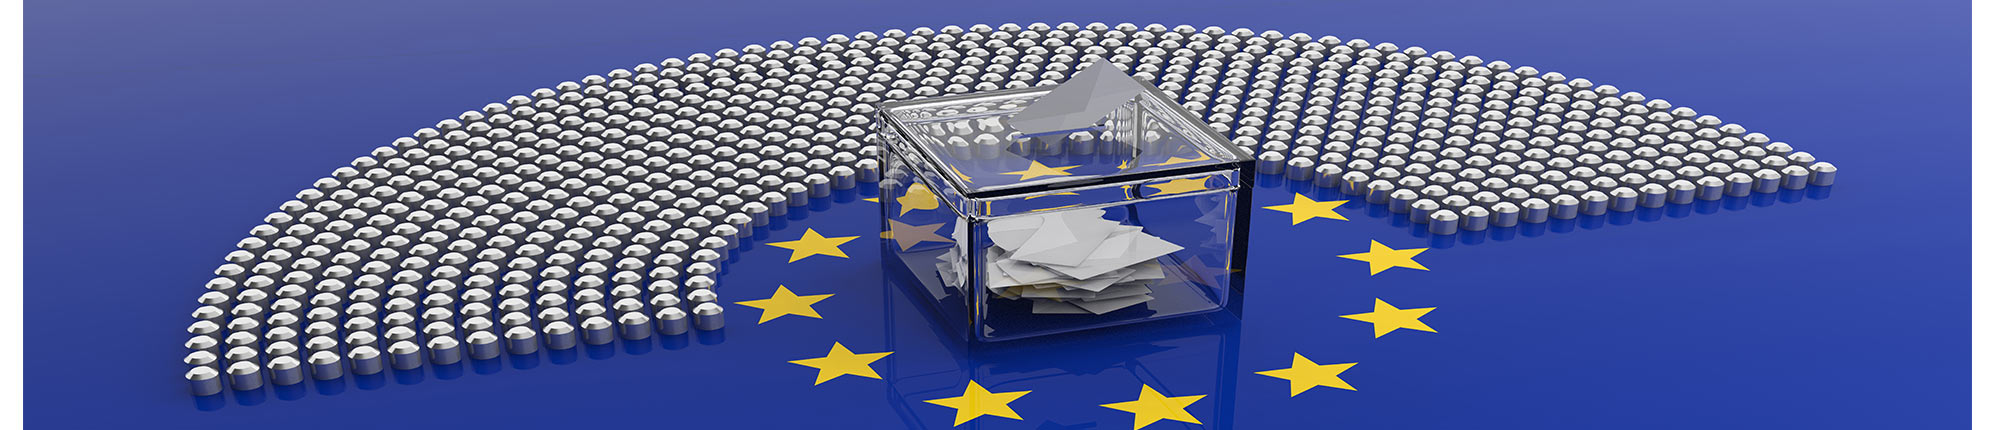 election europeennes 2019 ©shutterstock